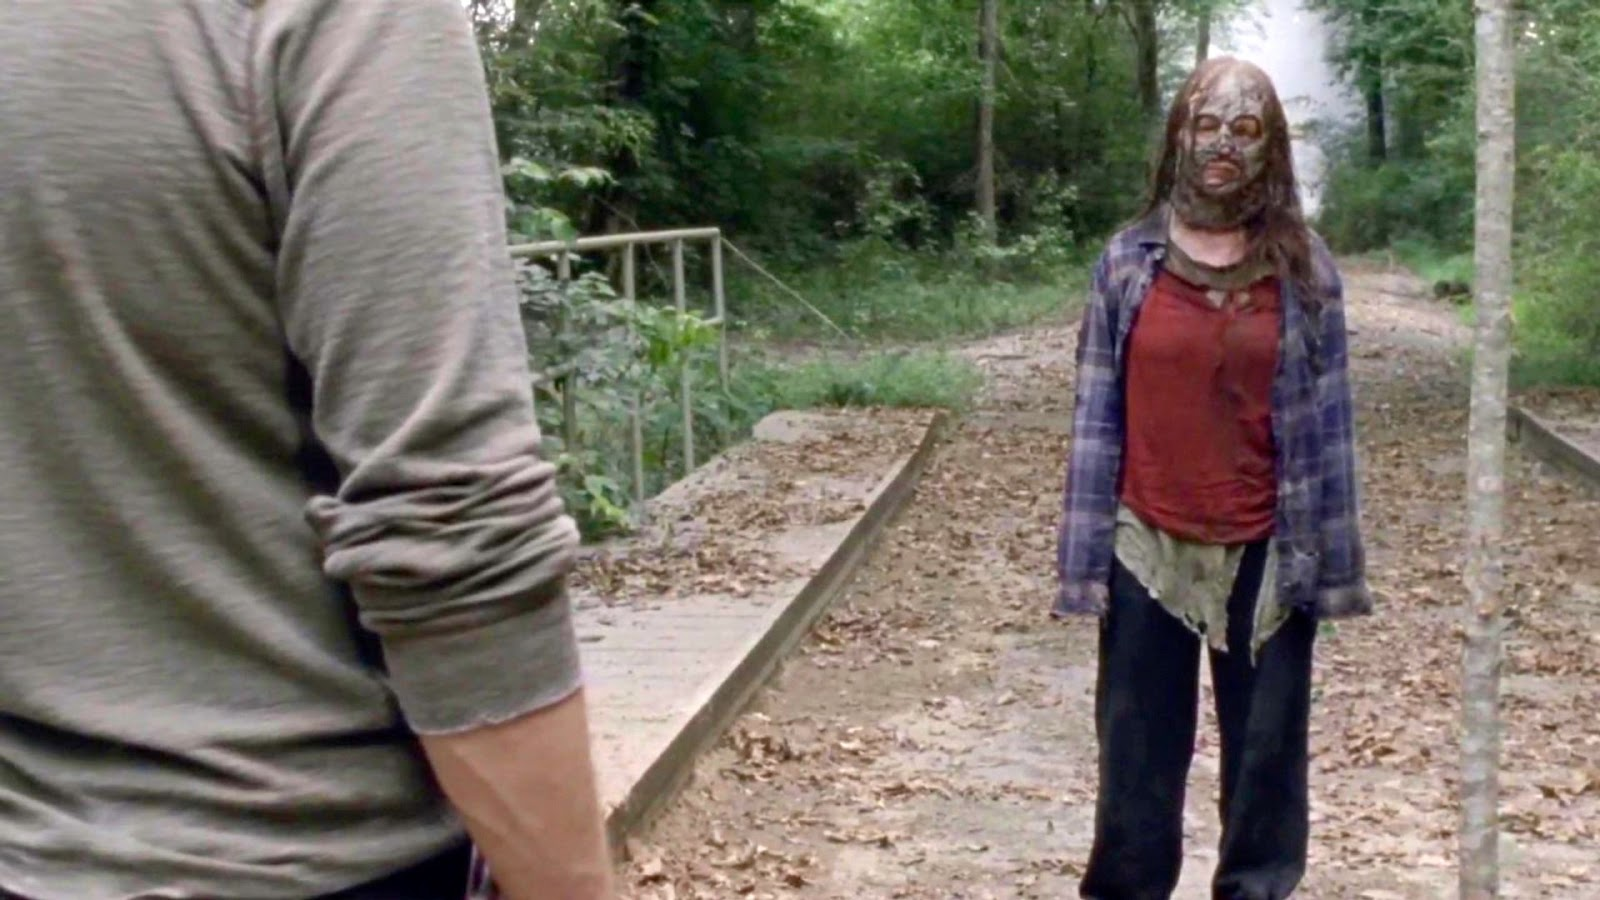 Gamma, en el episodio 10x08 de The Walking Dead